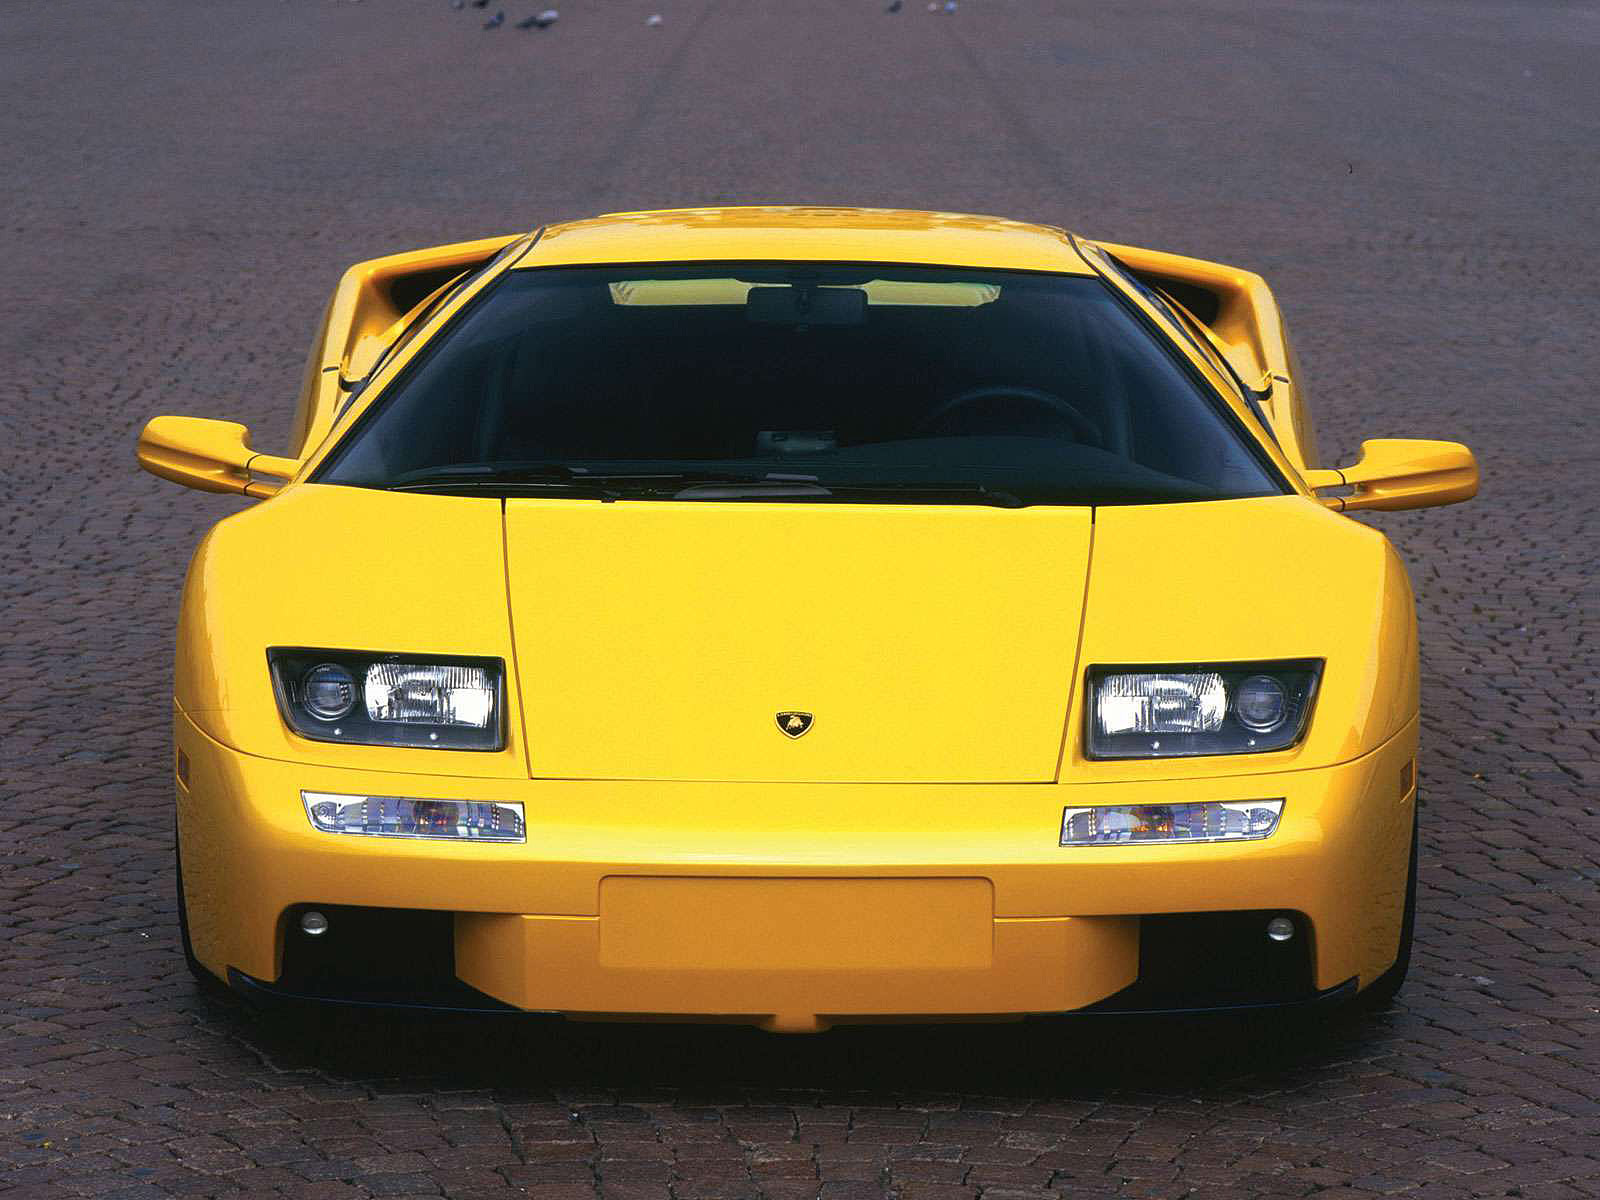 2001 Lamborghini Diablo 6 0 VT accident lawyers info